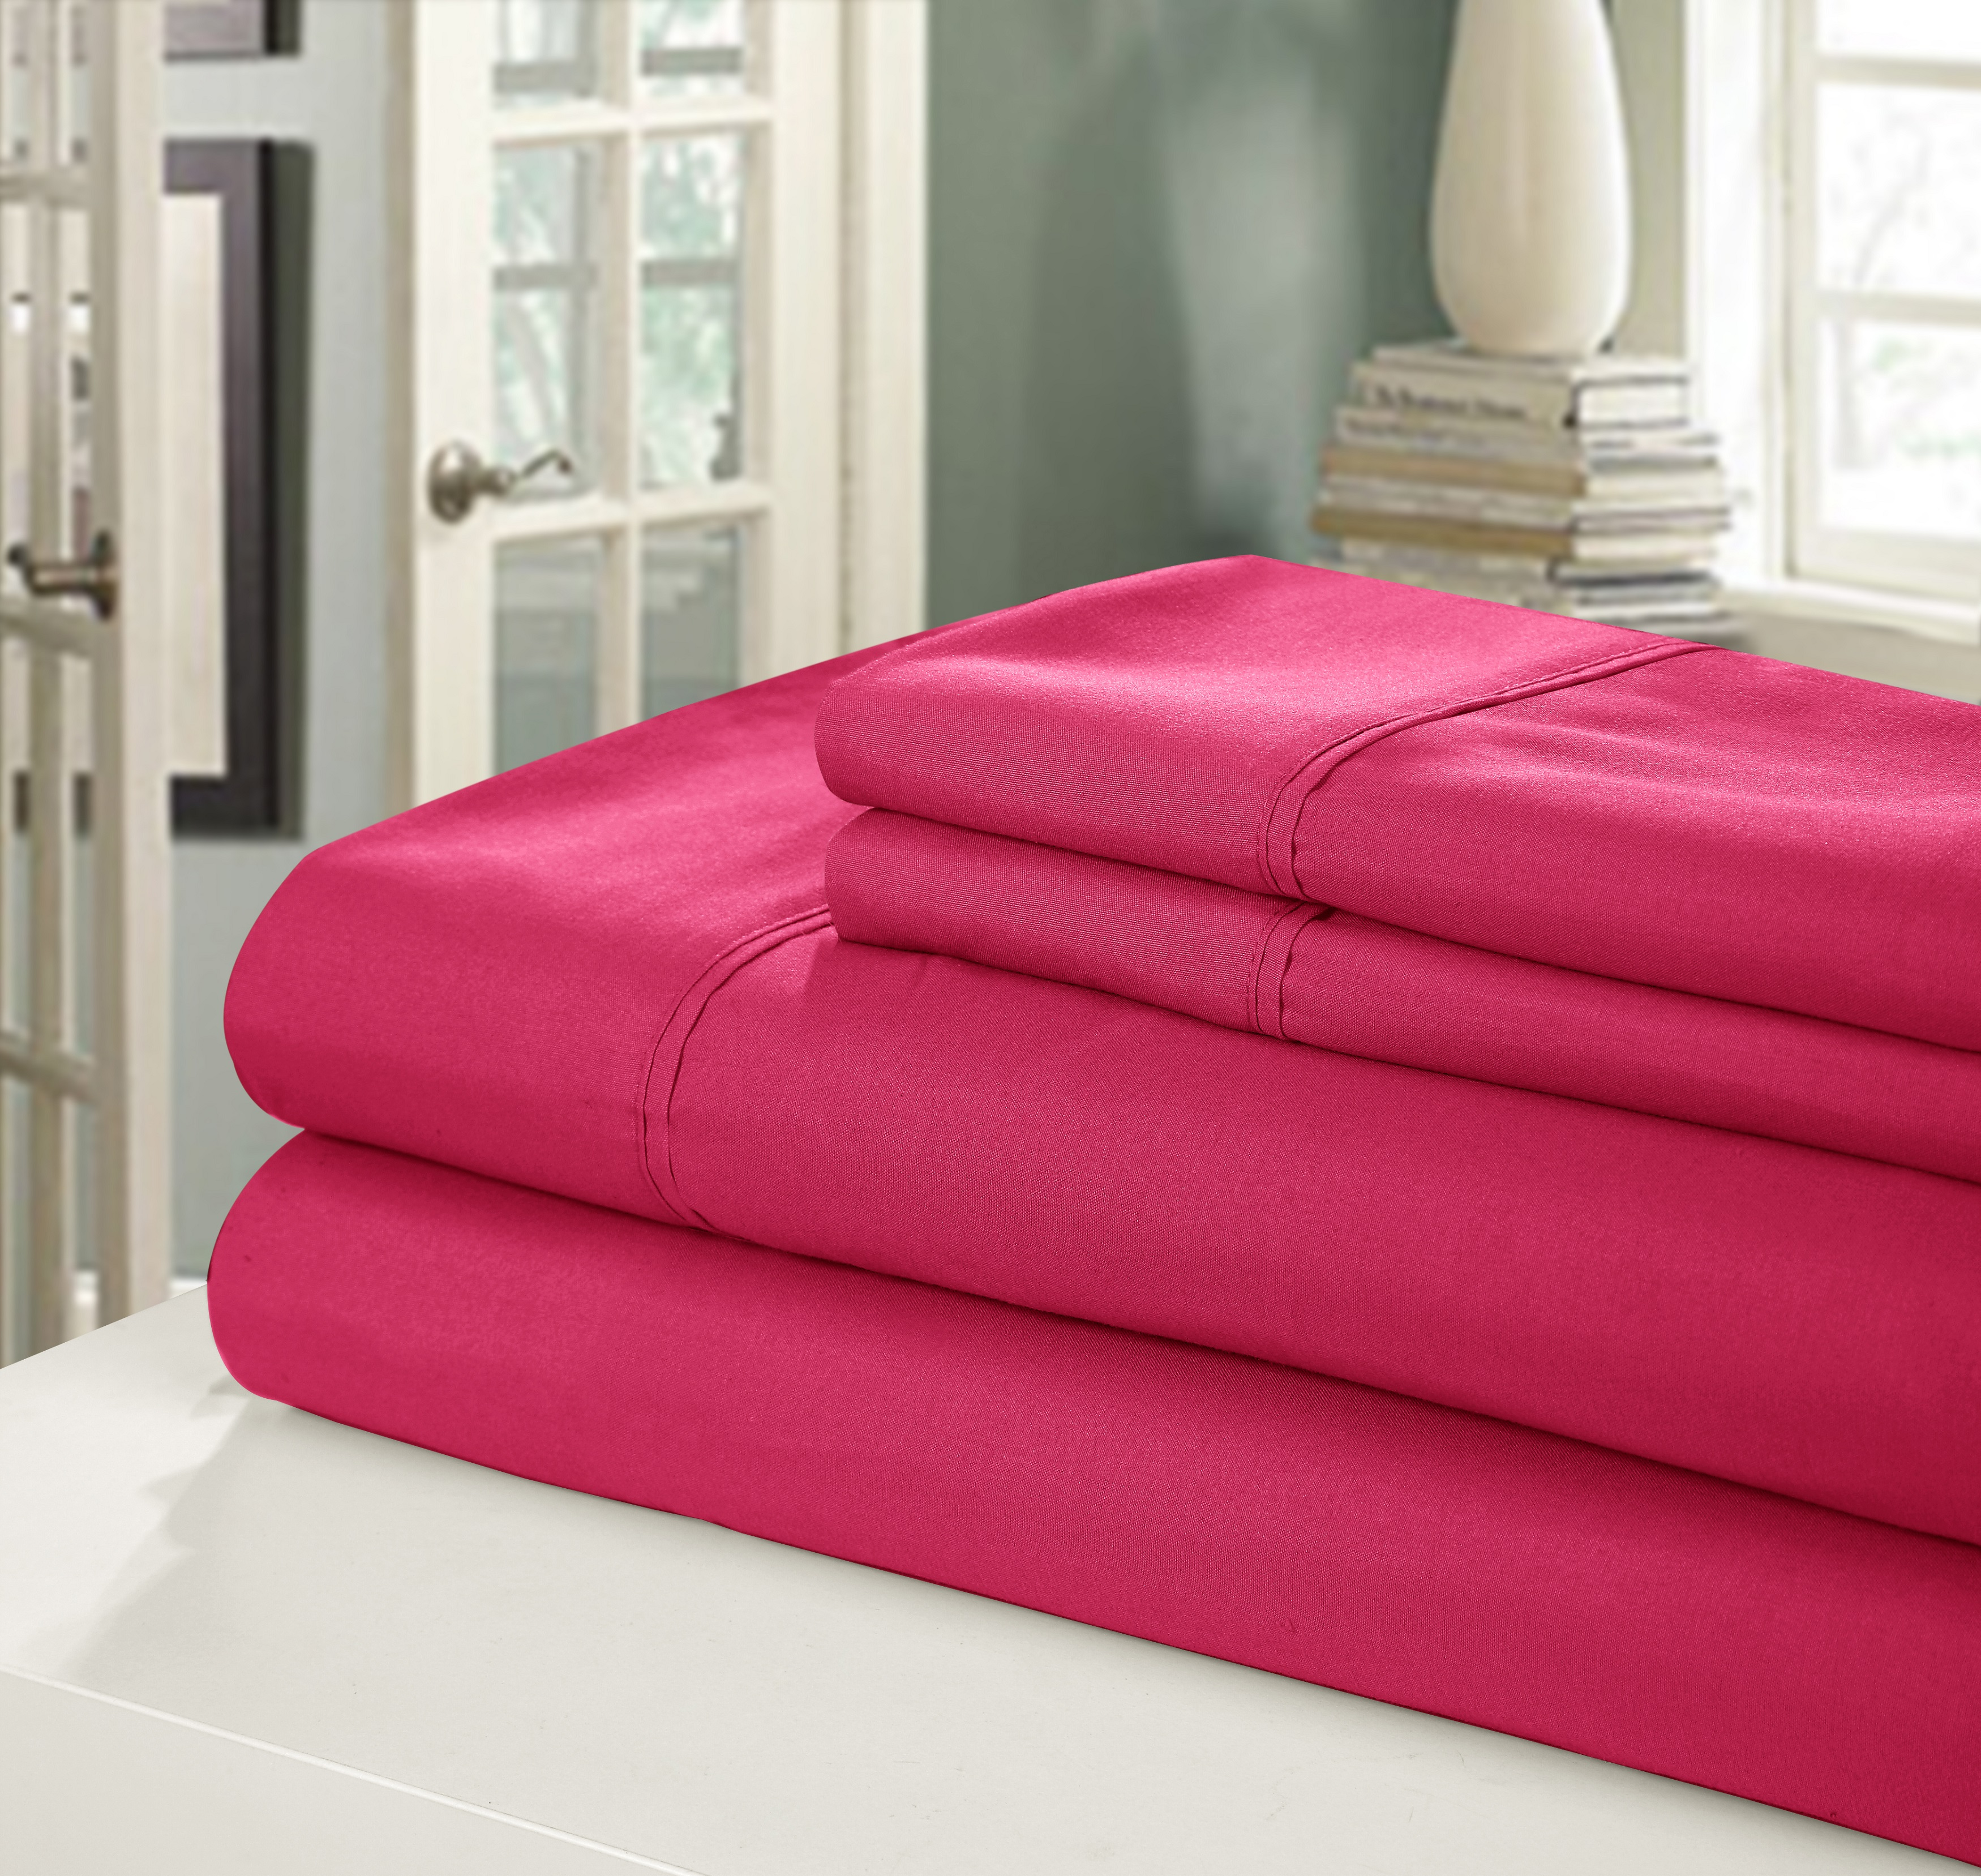 Chic Home NEW!! Chic Home 400 Series Peach Skin Microfiber 4-Piece Sheet Set Ensemble, Queen, Fuchsia